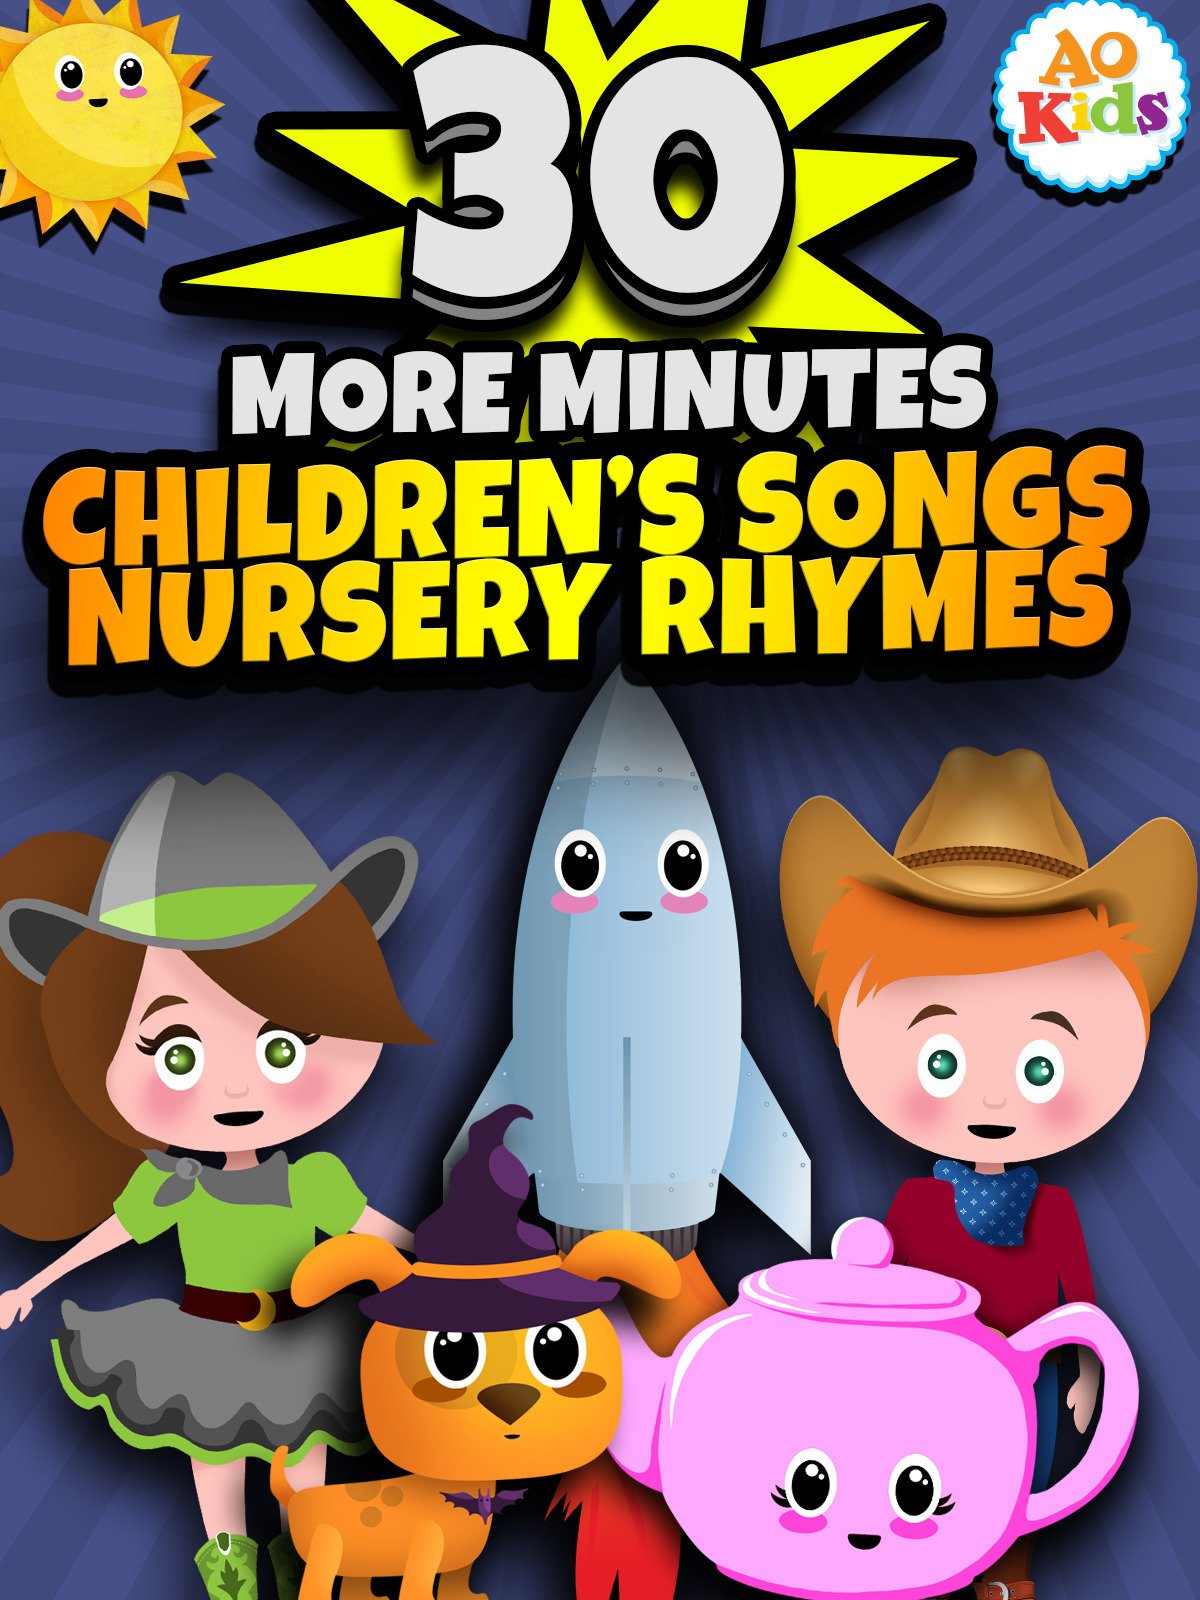 30 More Minutes of Children's Songs and Nursery Rhymes